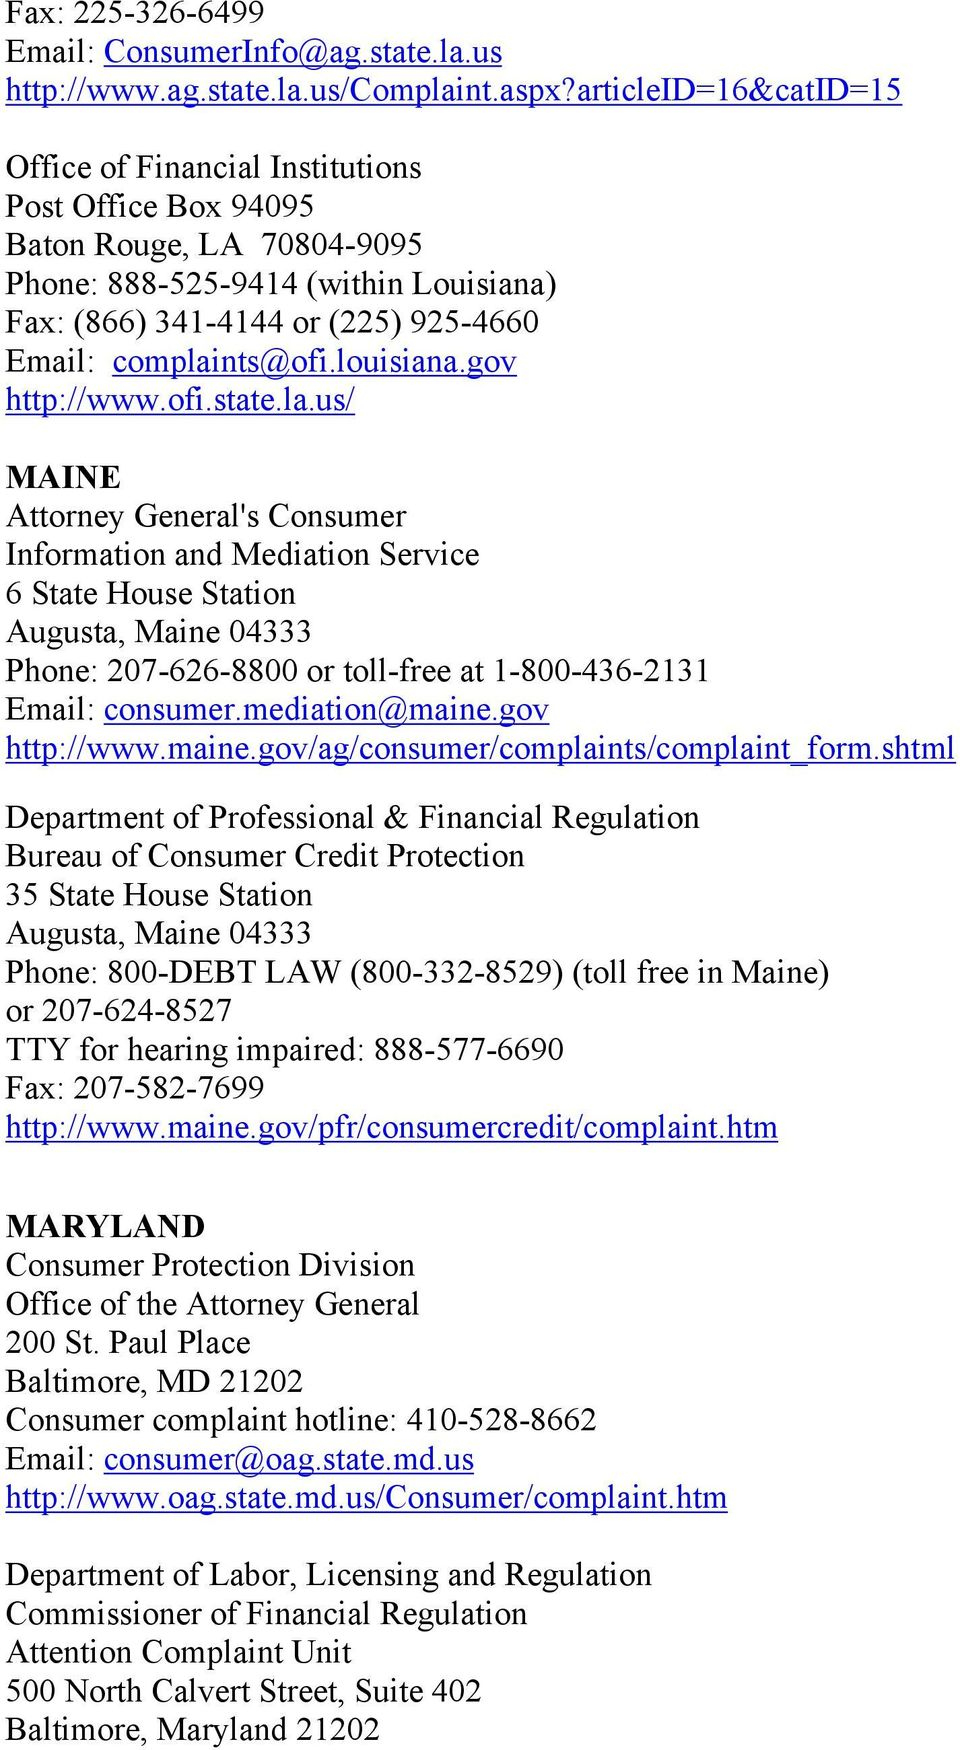 complaints@ofi.louisiana.gov http://www.ofi.state.la.us/ MAINE Attorney General's Consumer Information and Mediation Service 6 State House Station Augusta, Maine 04333 Phone: 207-626-8800 or toll-free at 1-800-436-2131 Email: consumer.